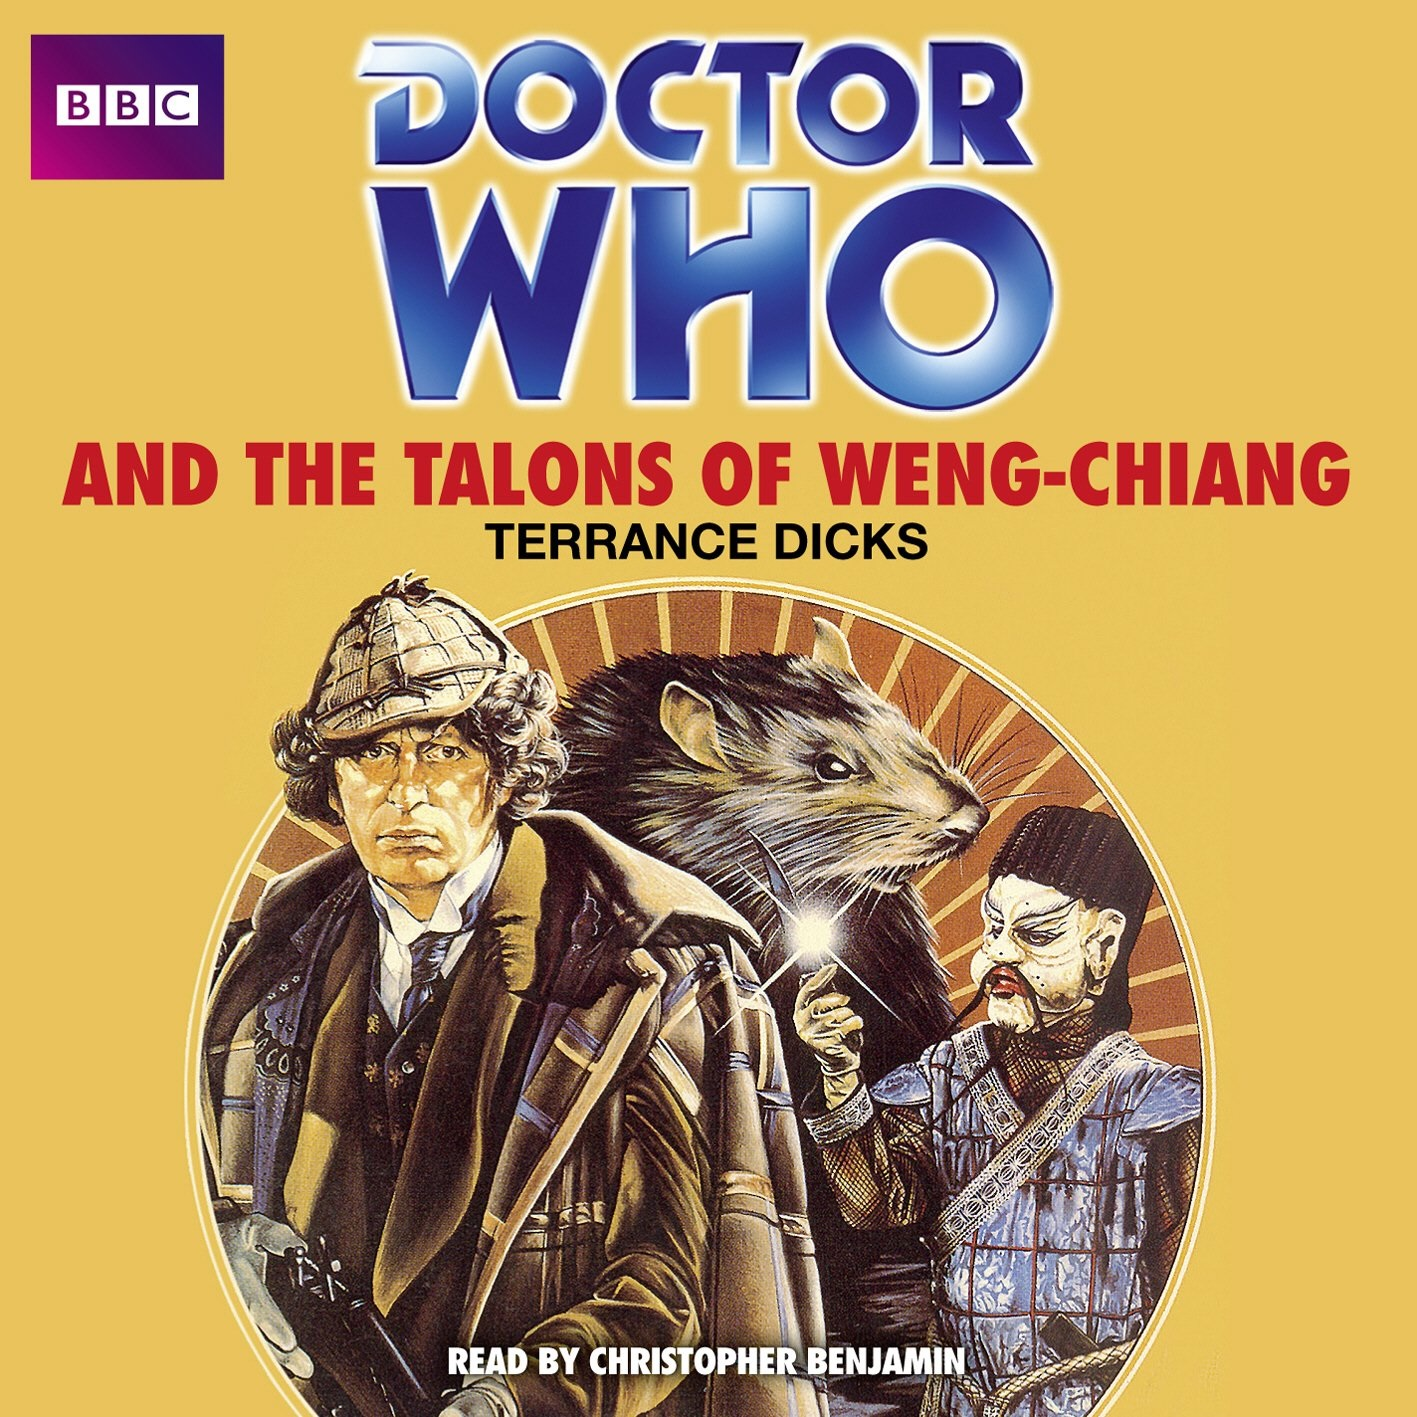 Reviewed: The Essential Terrance Dicks — Doctor Who and the Talons of Weng-Chiang (Target)